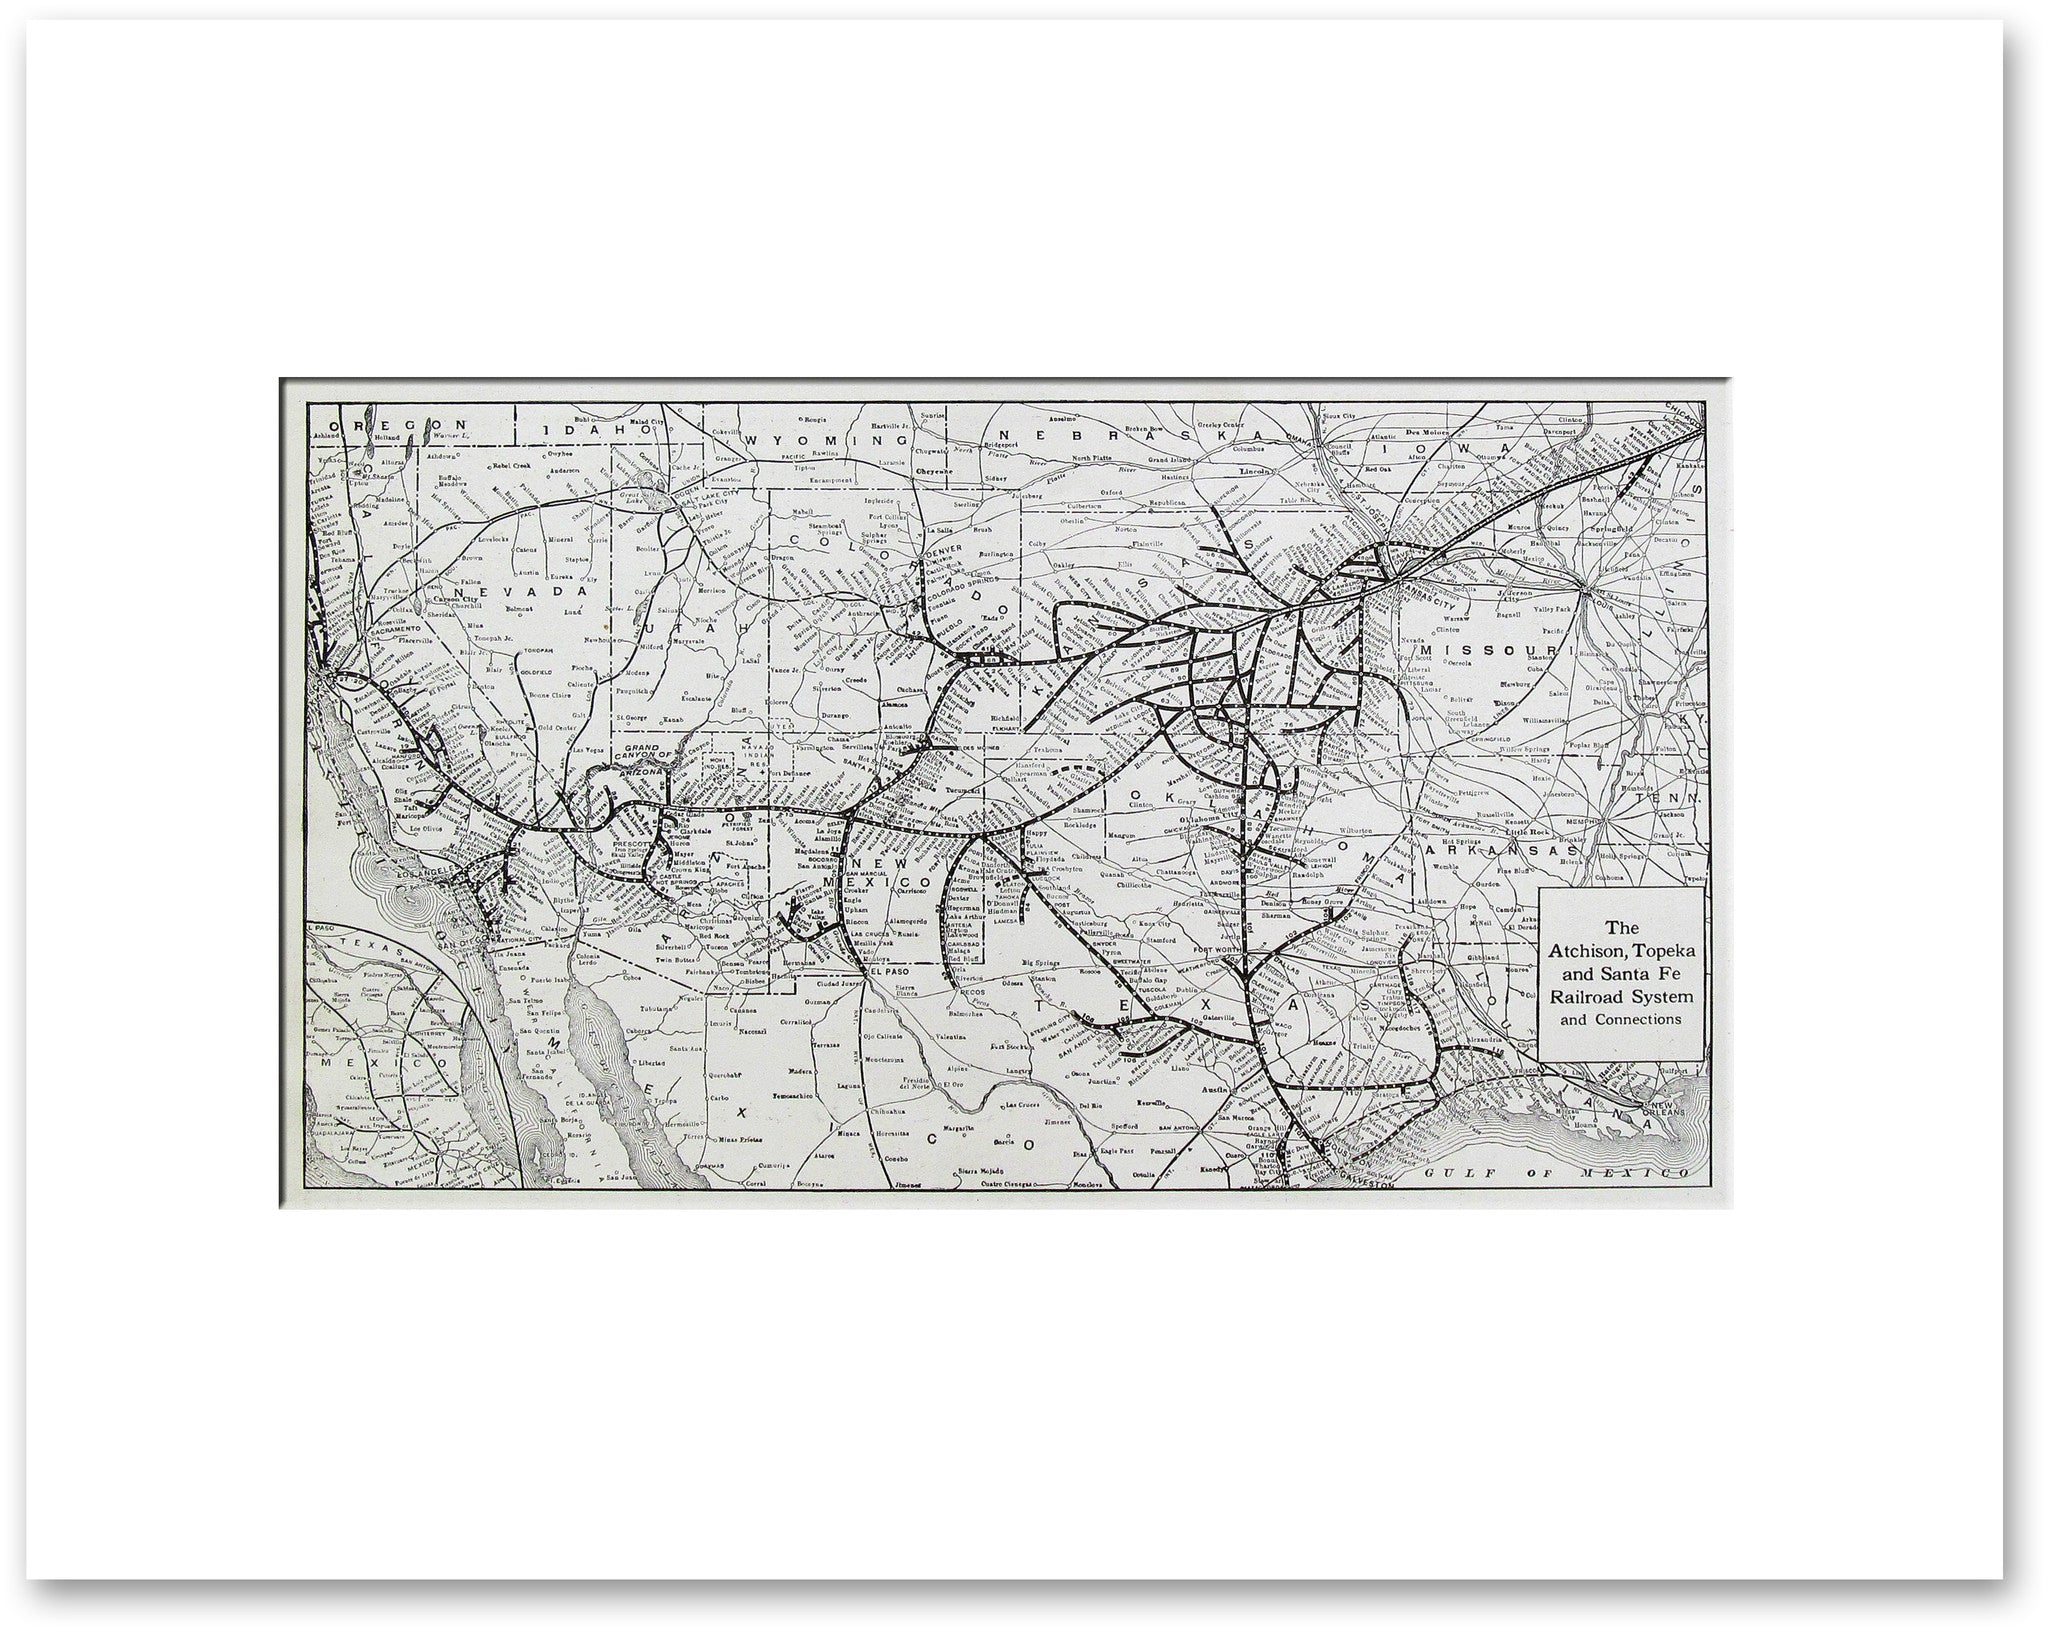 Atchison Topeka And Santa Fe Railroad System Vintage Maps - Atchinson topeka and santa ferailroad on the us map